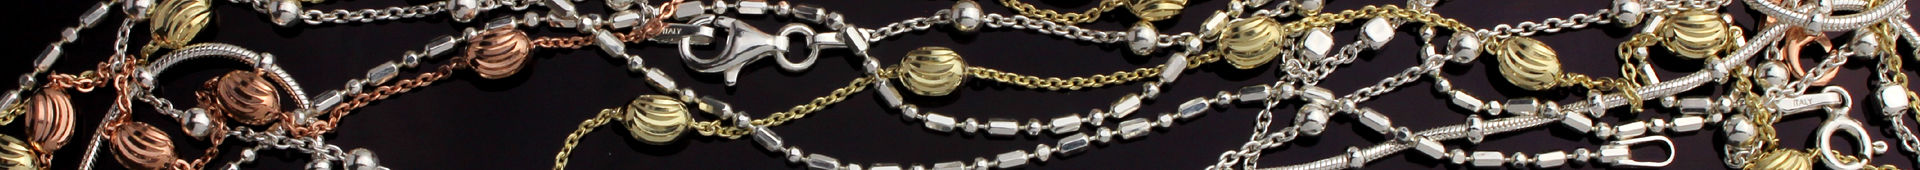 Sterling Silver Chains With Beads